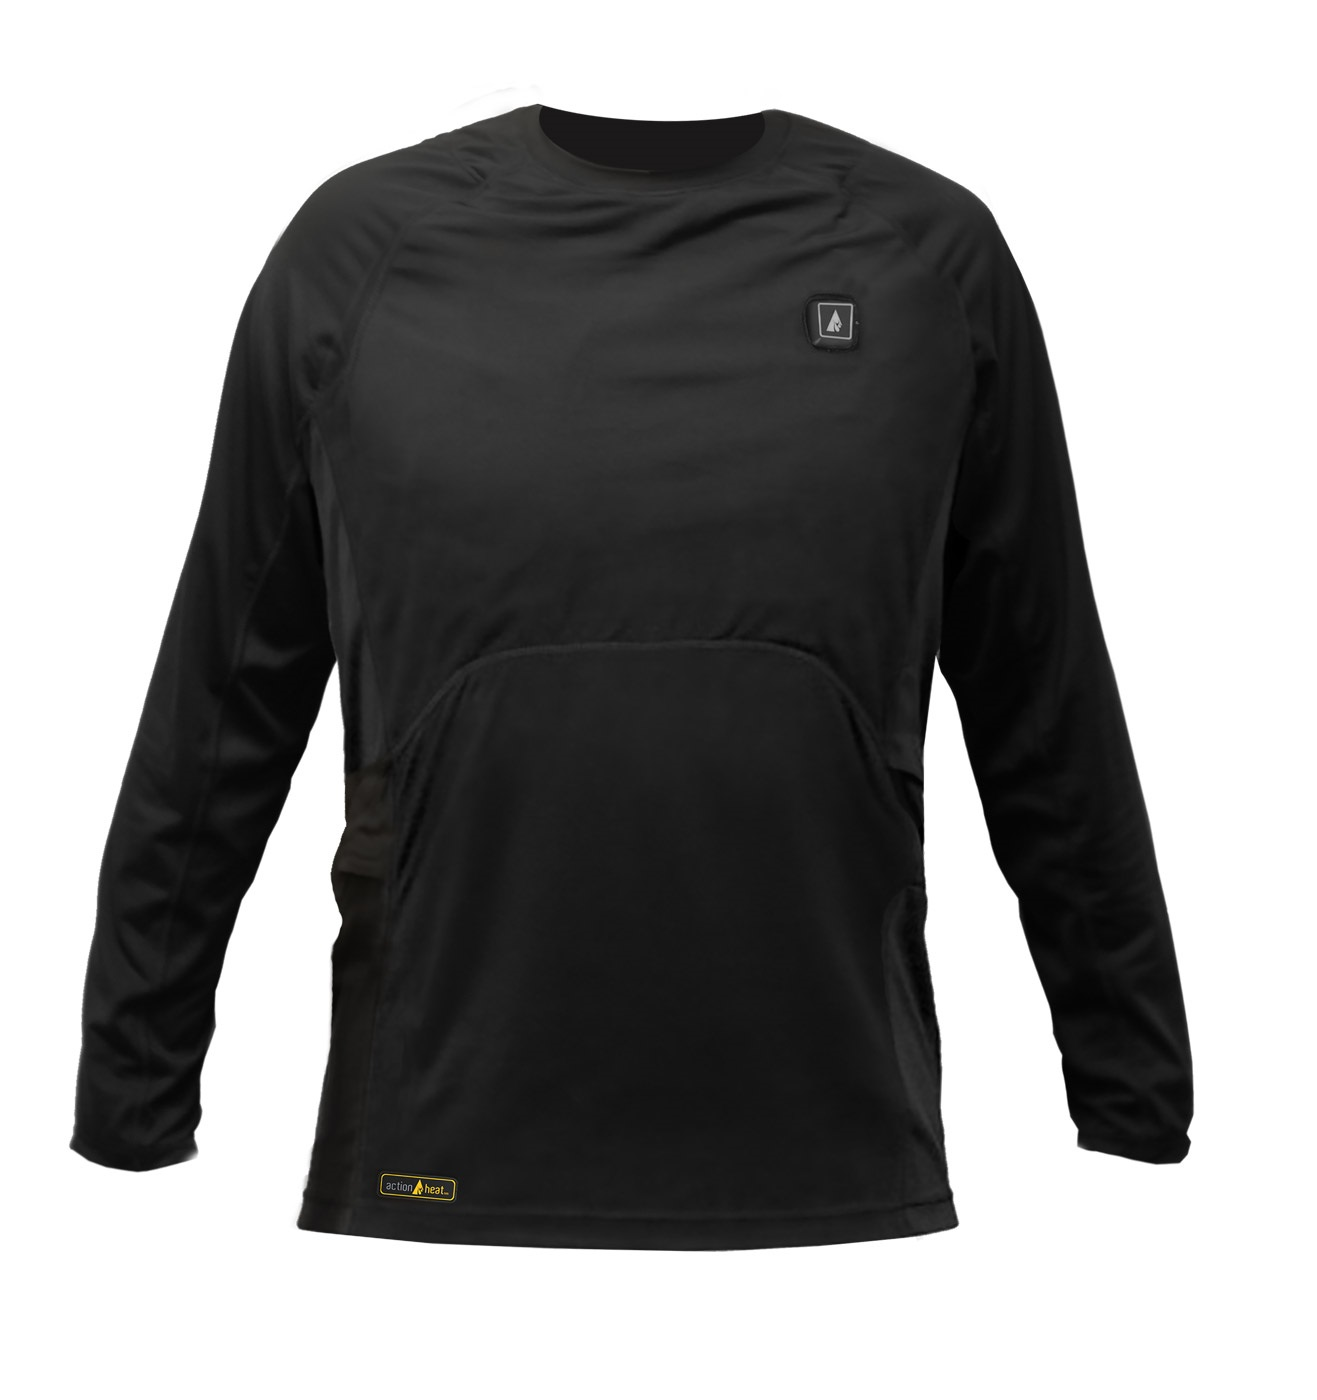 The ActionHeat battery heated base layers are revolutionary in the world of heated clothing. Using the patented 5V signal technology, it allows for any 5V battery to be used with the ActionHeat base layers. This allows for unlimited battery options and